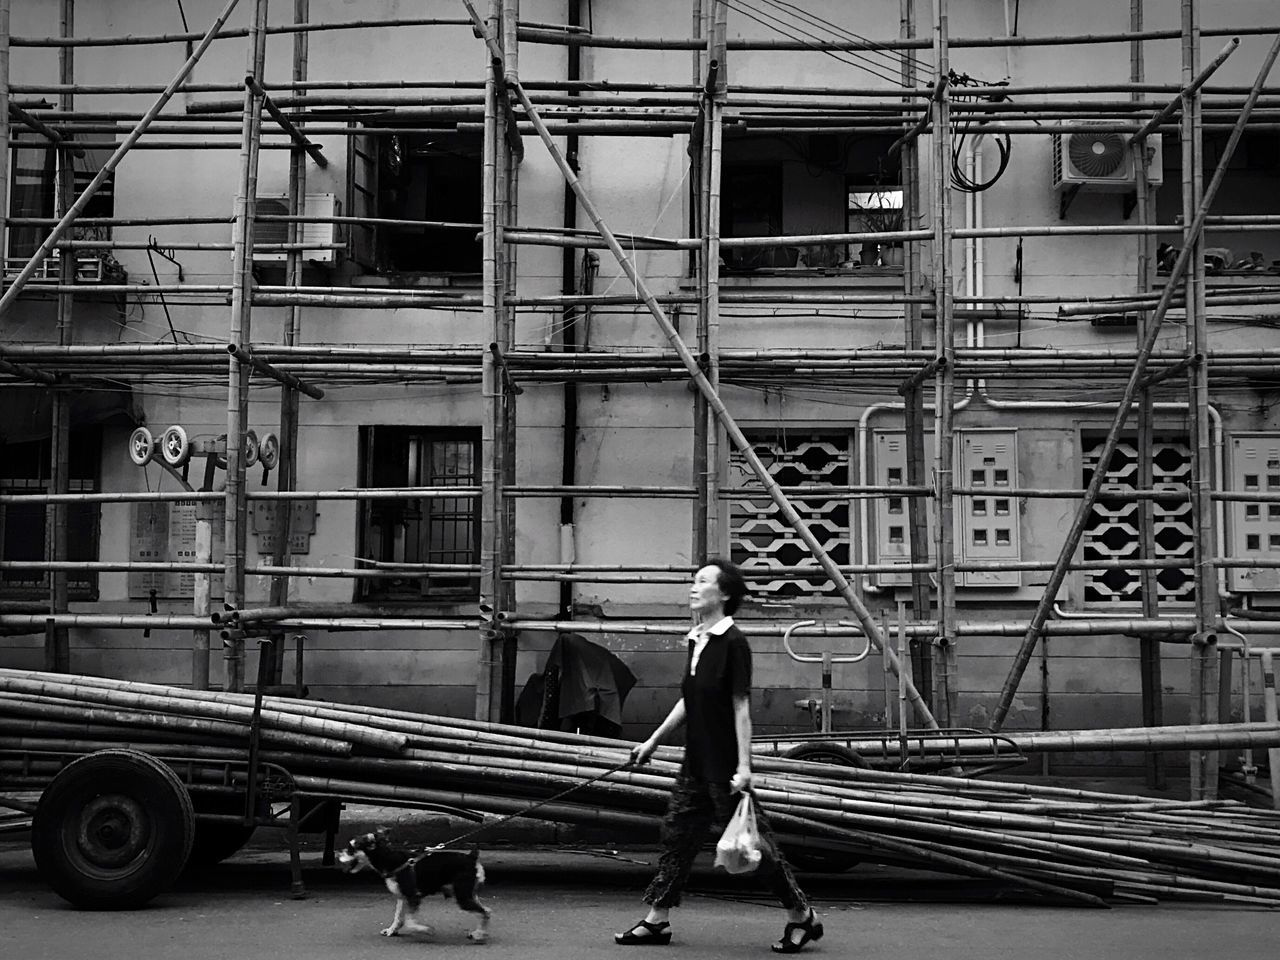 street photography streetphotography black and white photography blackandwhitephotography black and white collection people photography people People watching The Week On Eyem blackandwhite photography streetphoto_bw blackandwhite black and white peoplephotography Blsckandwhite Black & White streetphotography_bw